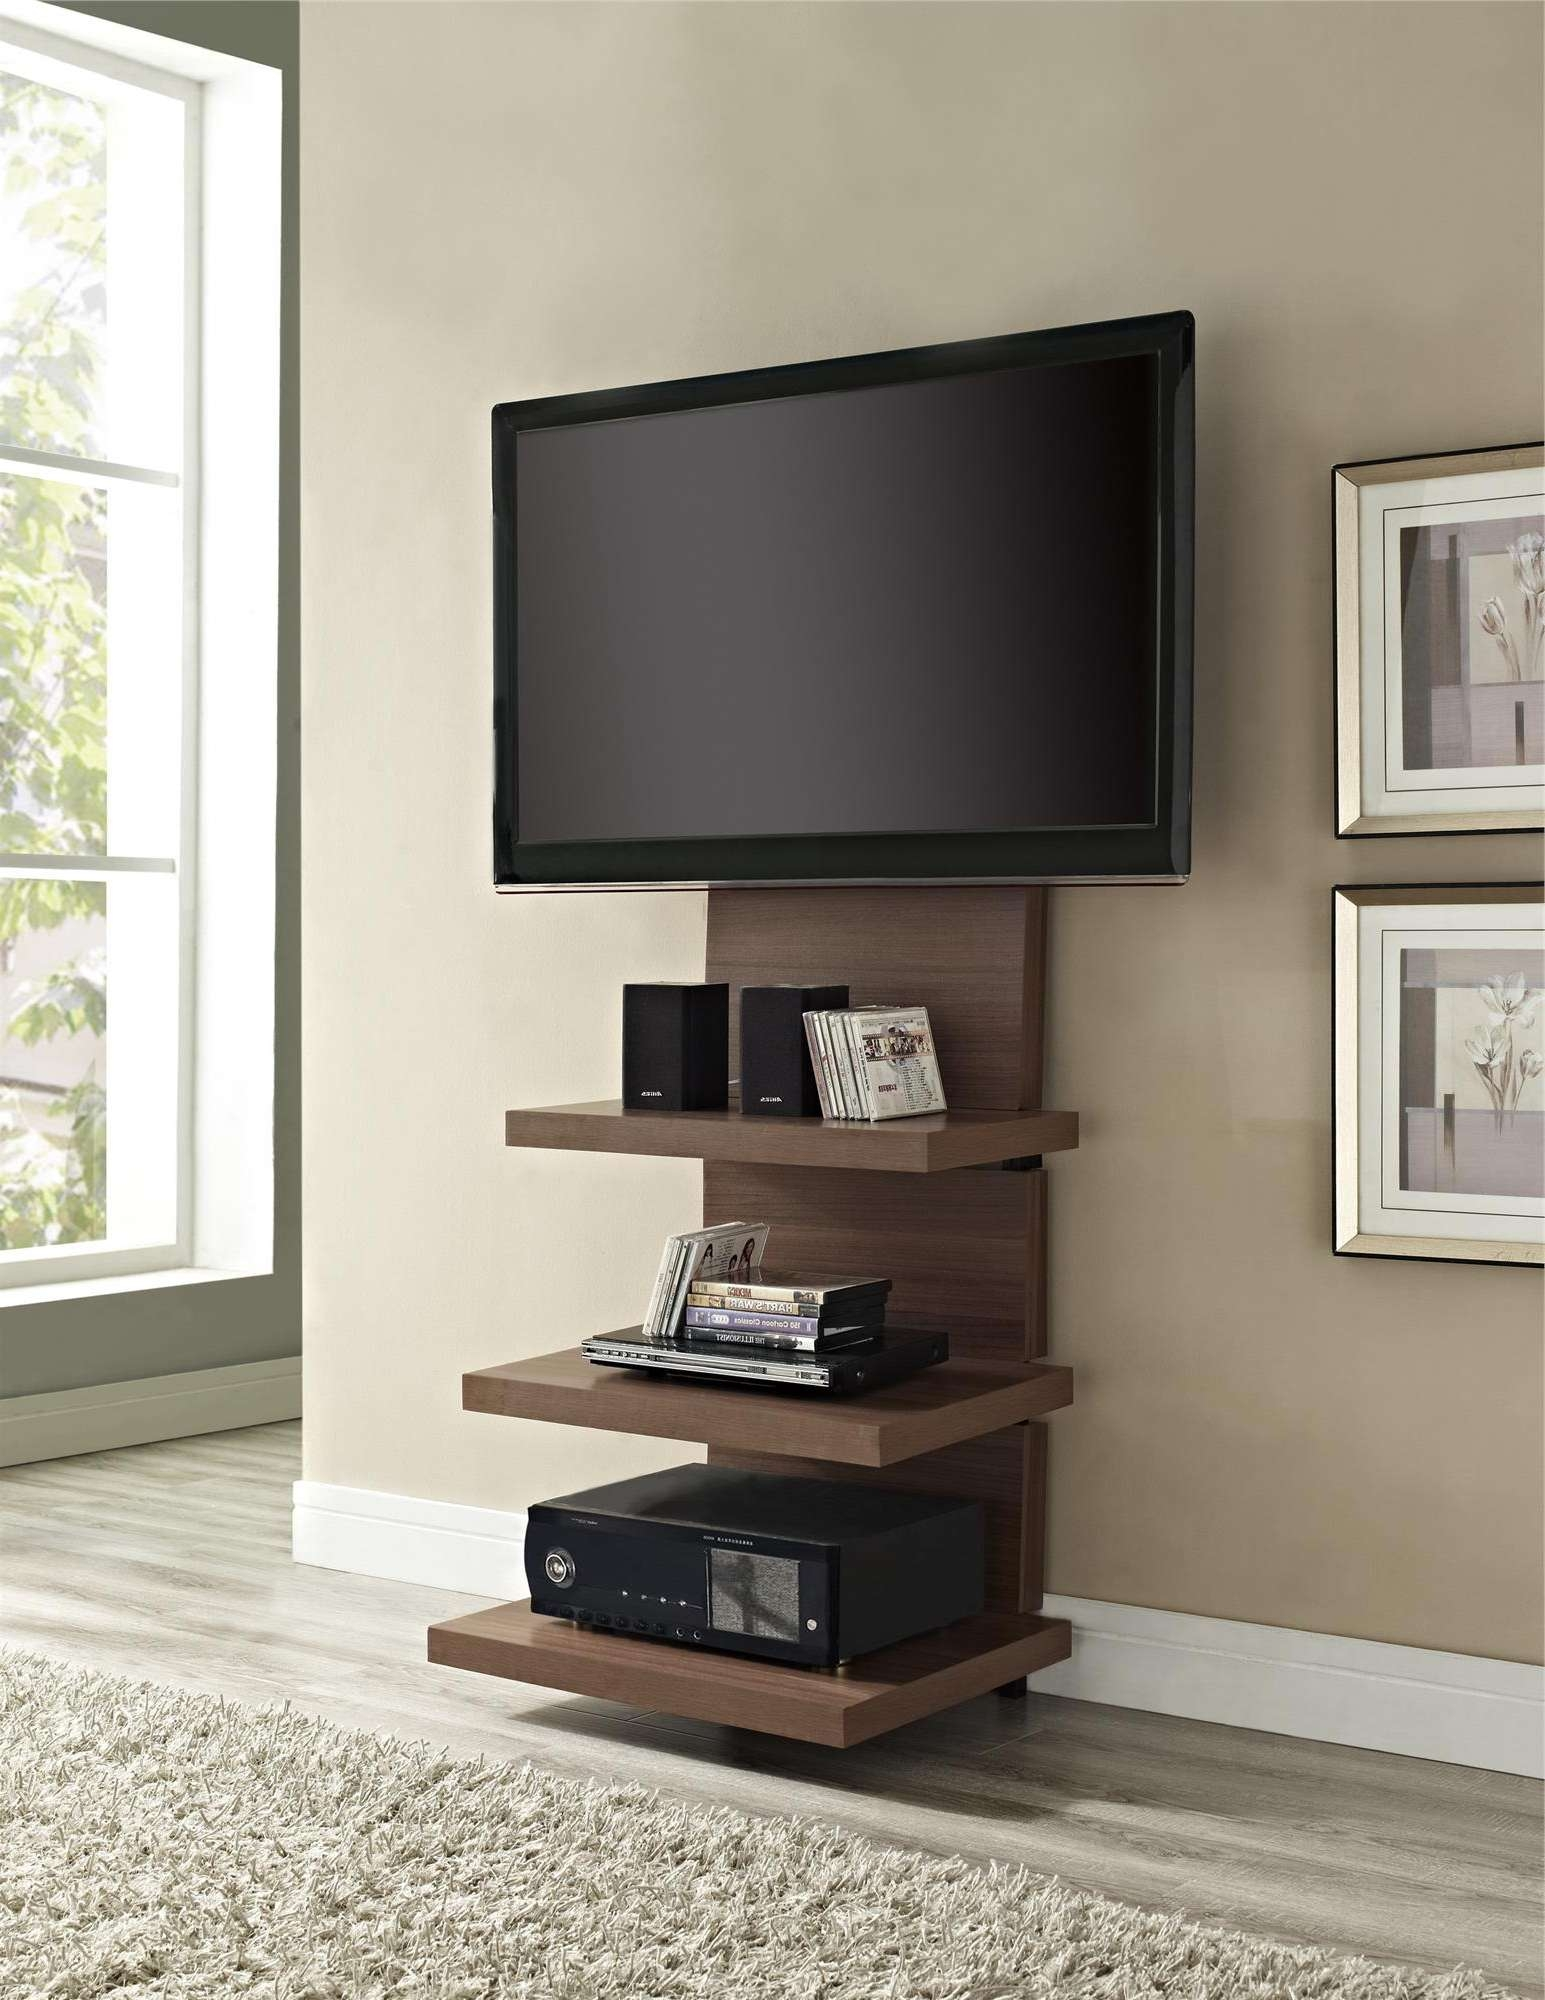 Tall Wood Wall Mounted Tv Stand With Shelves And Mount For Flat Intended For Unique Tv Stands (View 5 of 15)